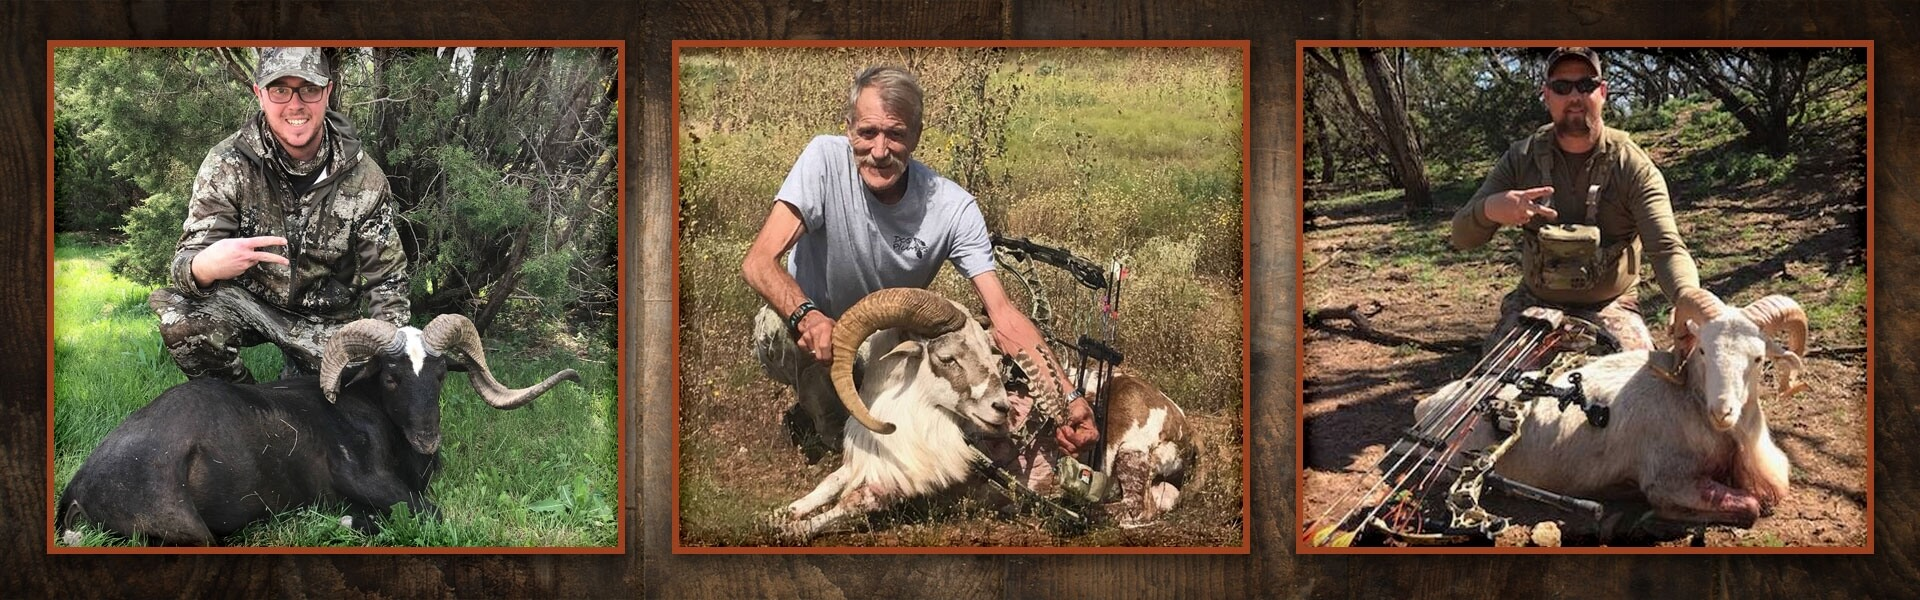 Ram & Hog Combo Hunts in Texas